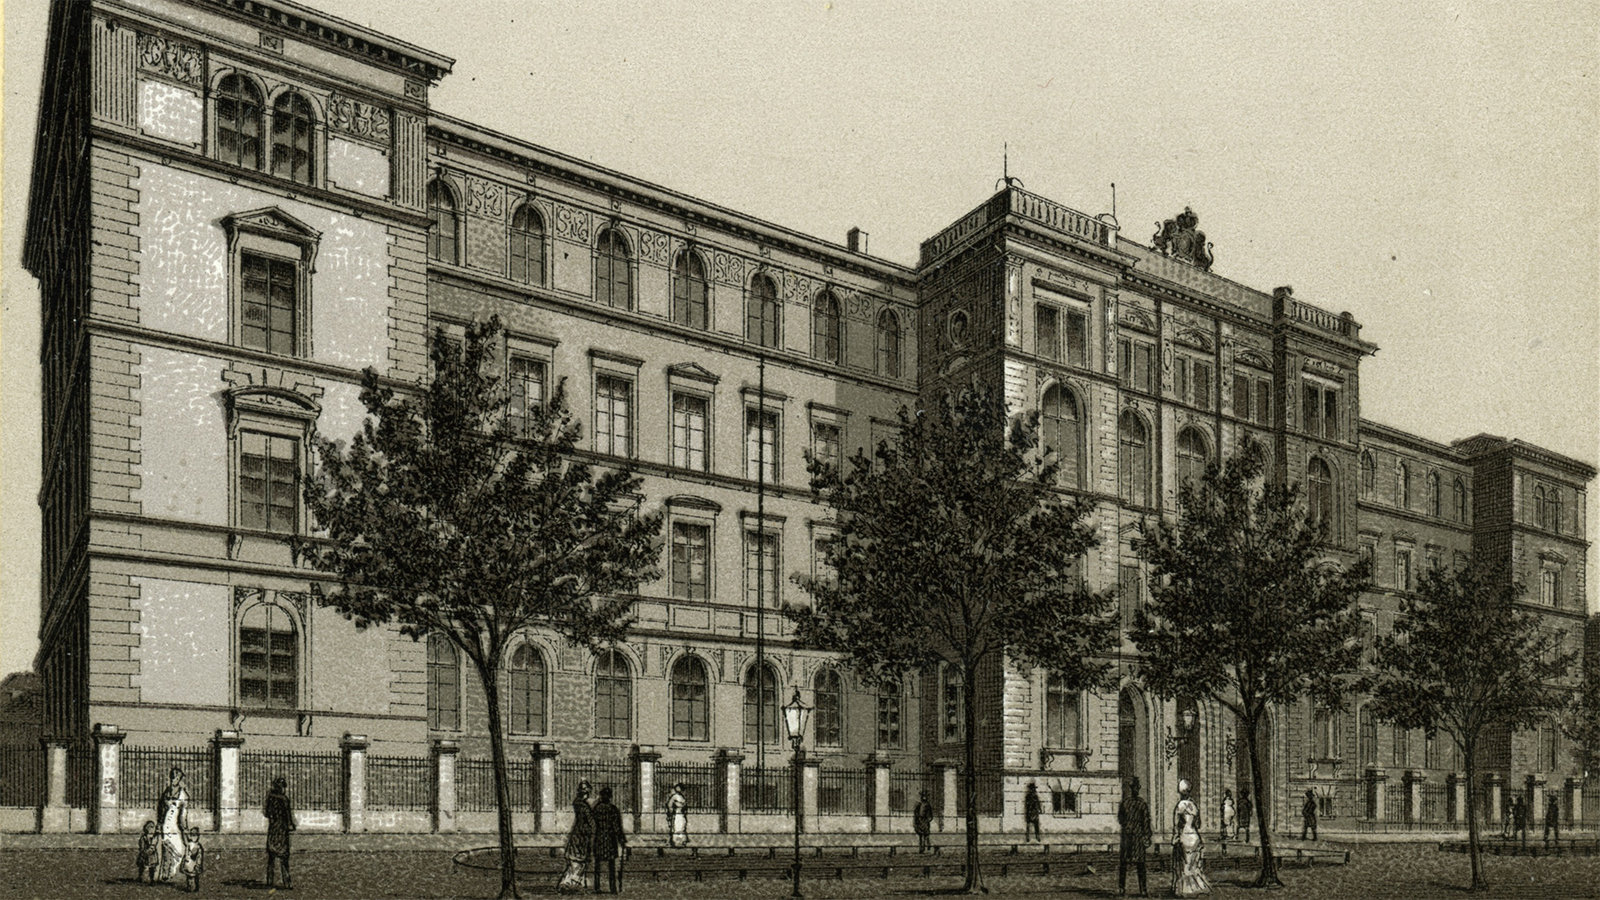 picture of the Böttcher Building from 1885